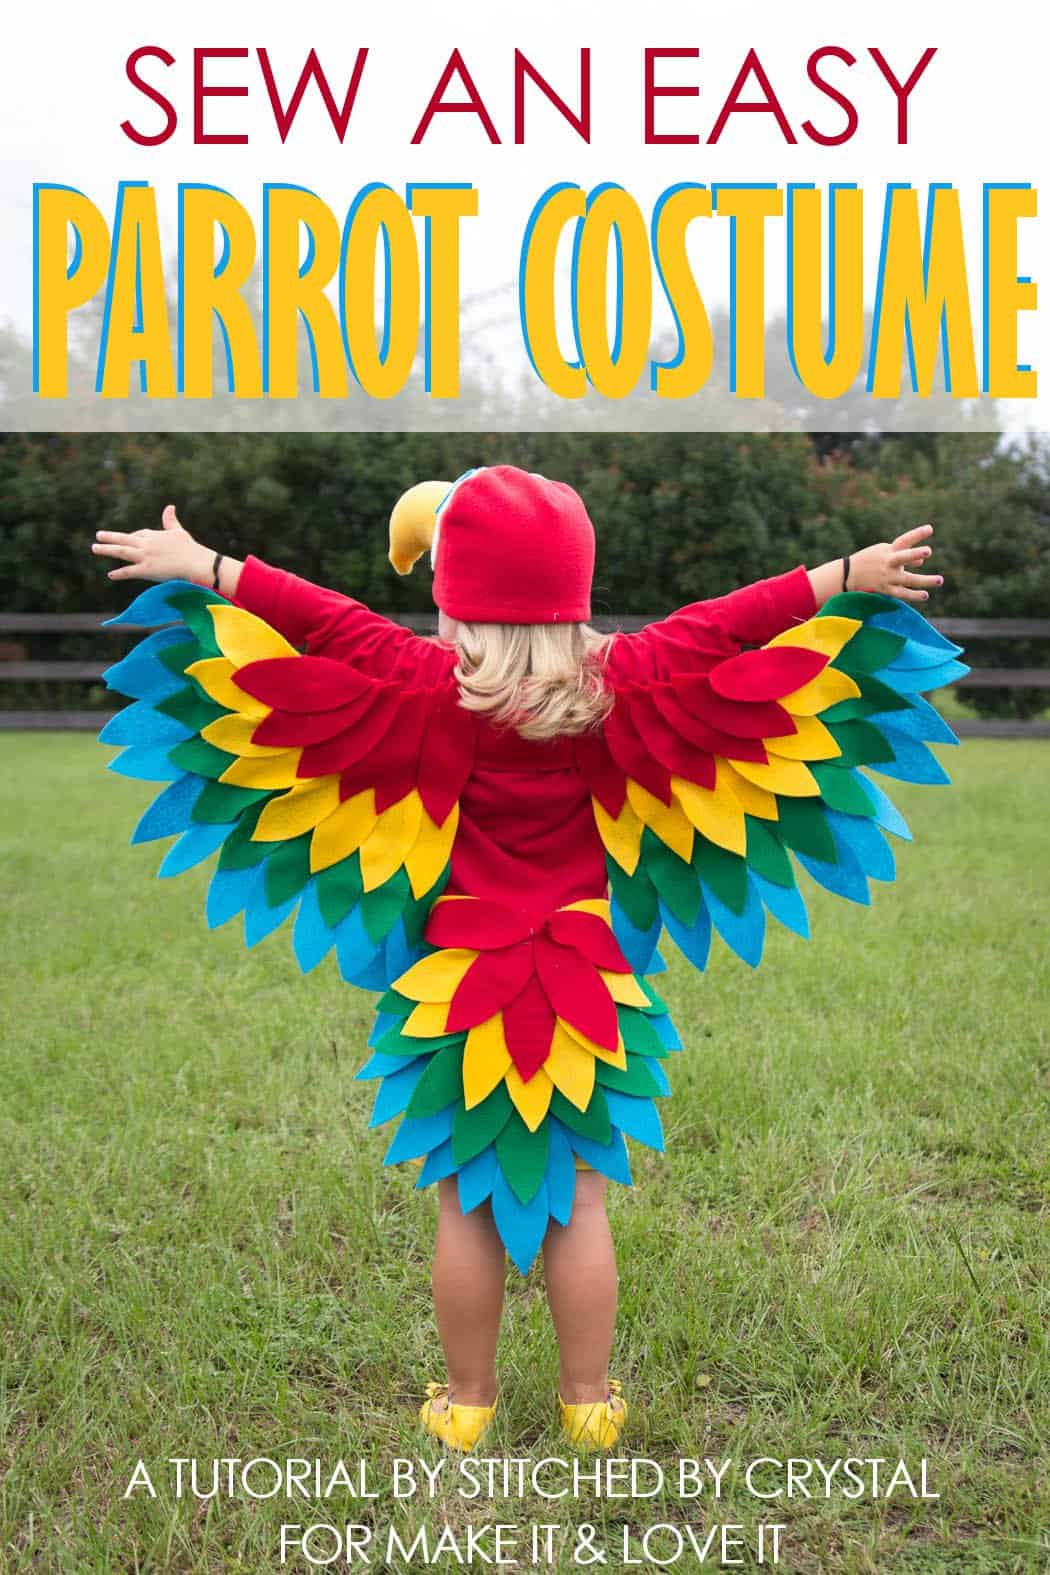 Easy sewn parrot costume